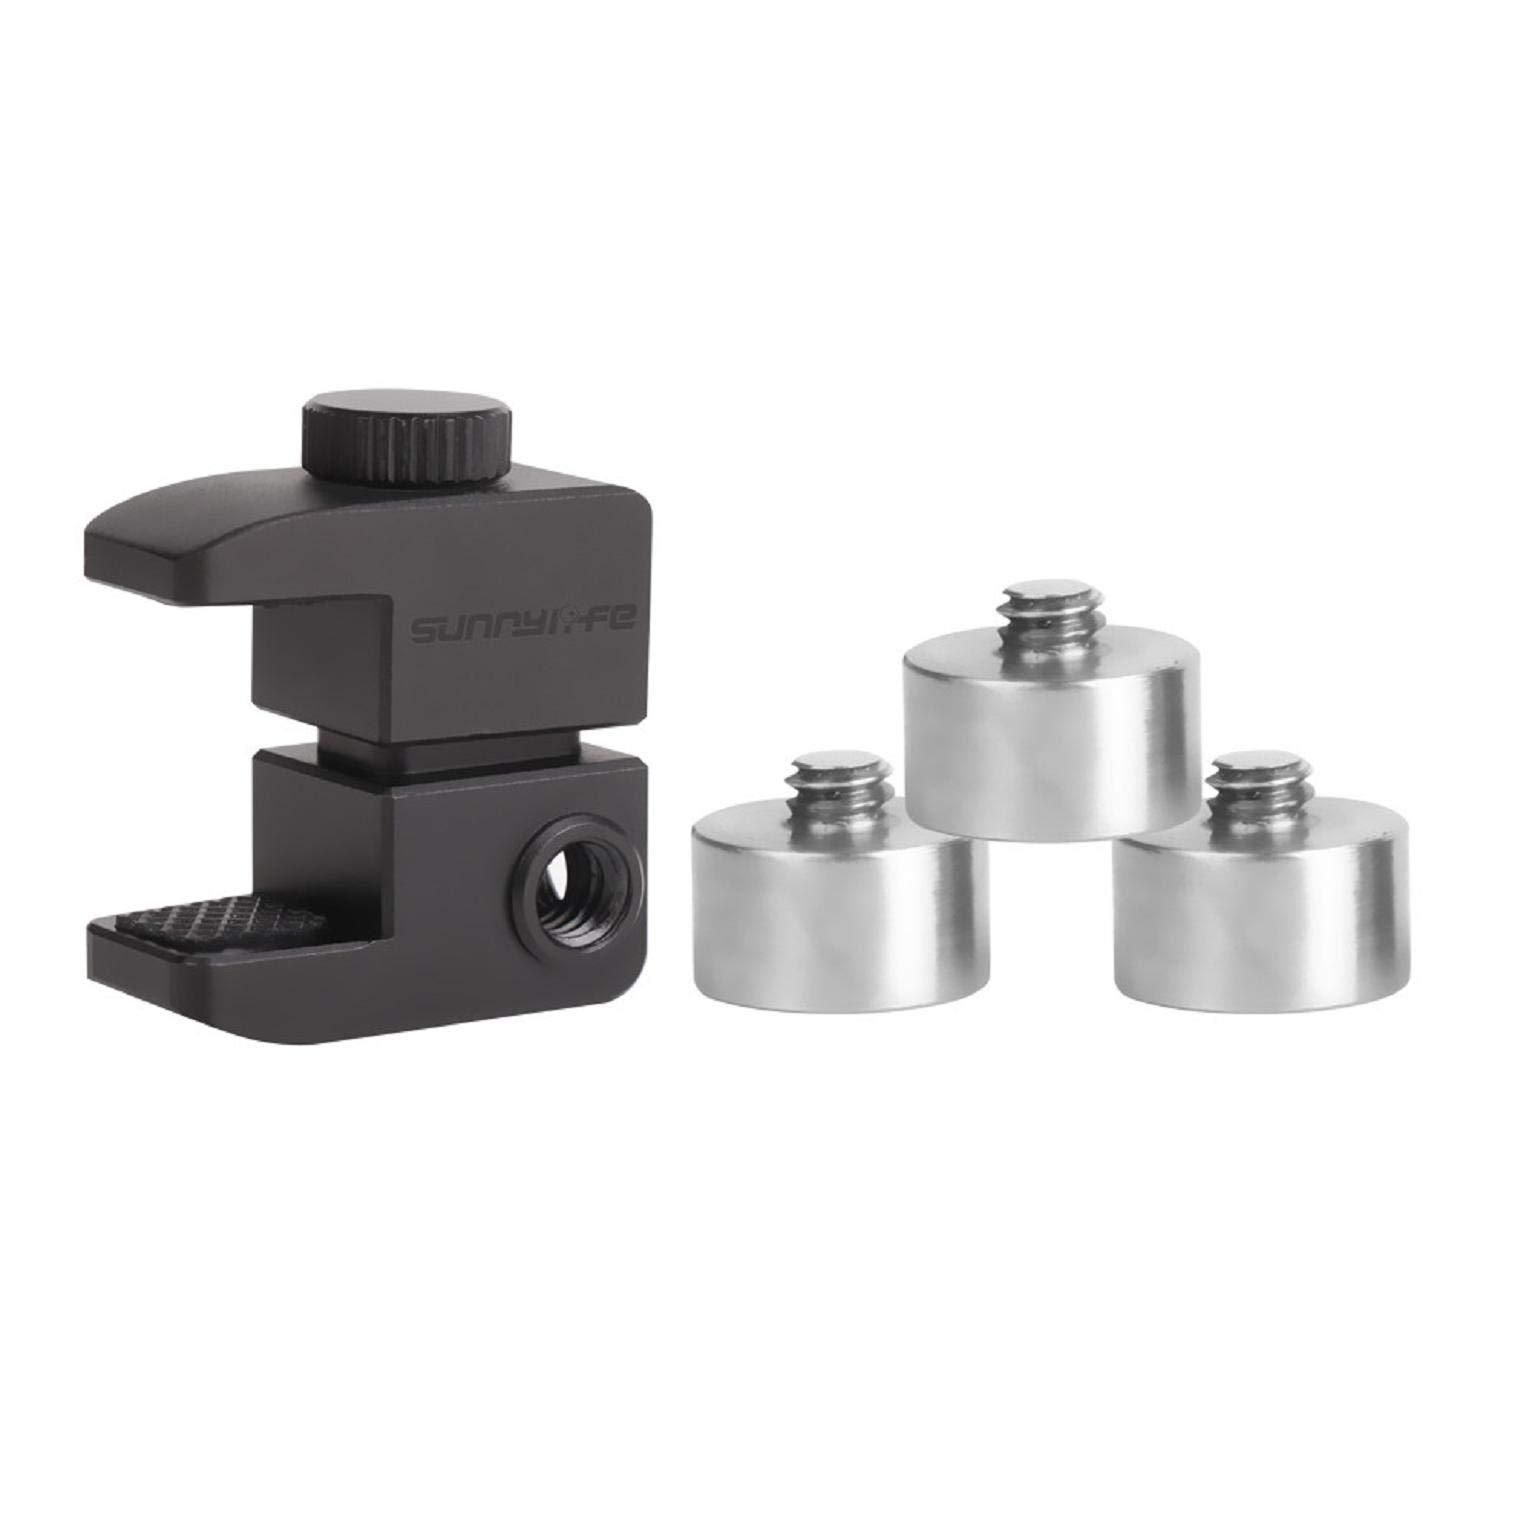 Dartphew Universal Removable Stabilizer Handheld Gimbal Counterweight Counter Balance Weights 70g for OSMO Mobile 2